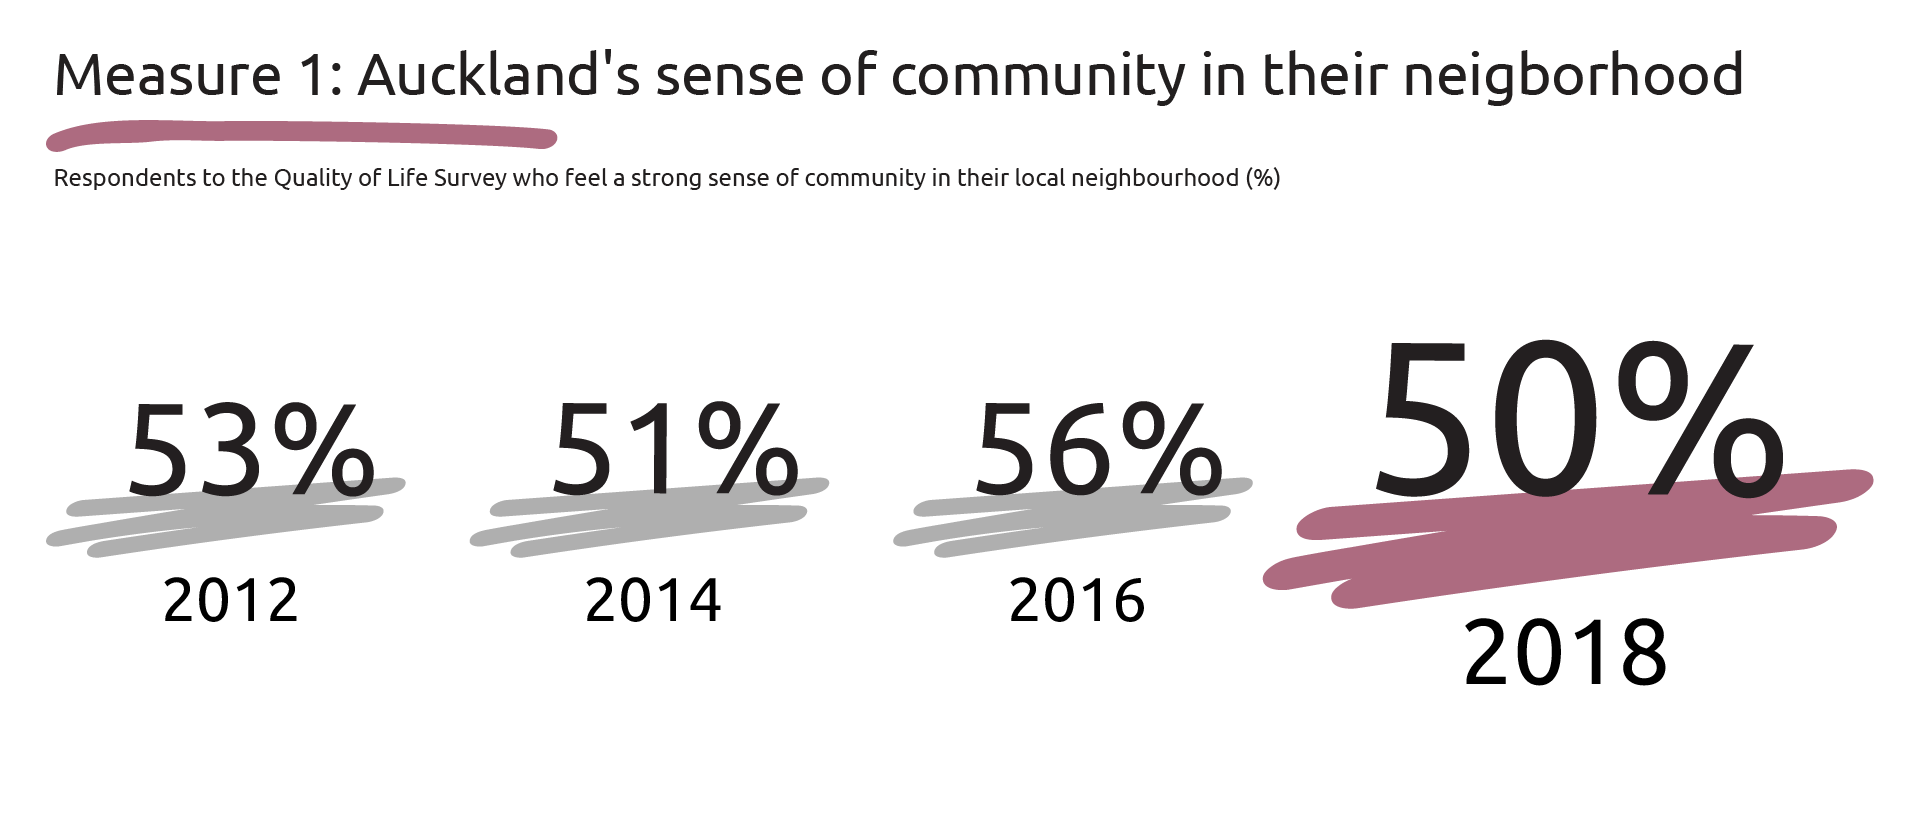 Graphic showing percentages of respondents to the QOL survey who feel a sense of community in their neighbourhood: 2012-53 per cent, 2014-51 per cent, 2016-56 per cent and 2018-50 per cent.